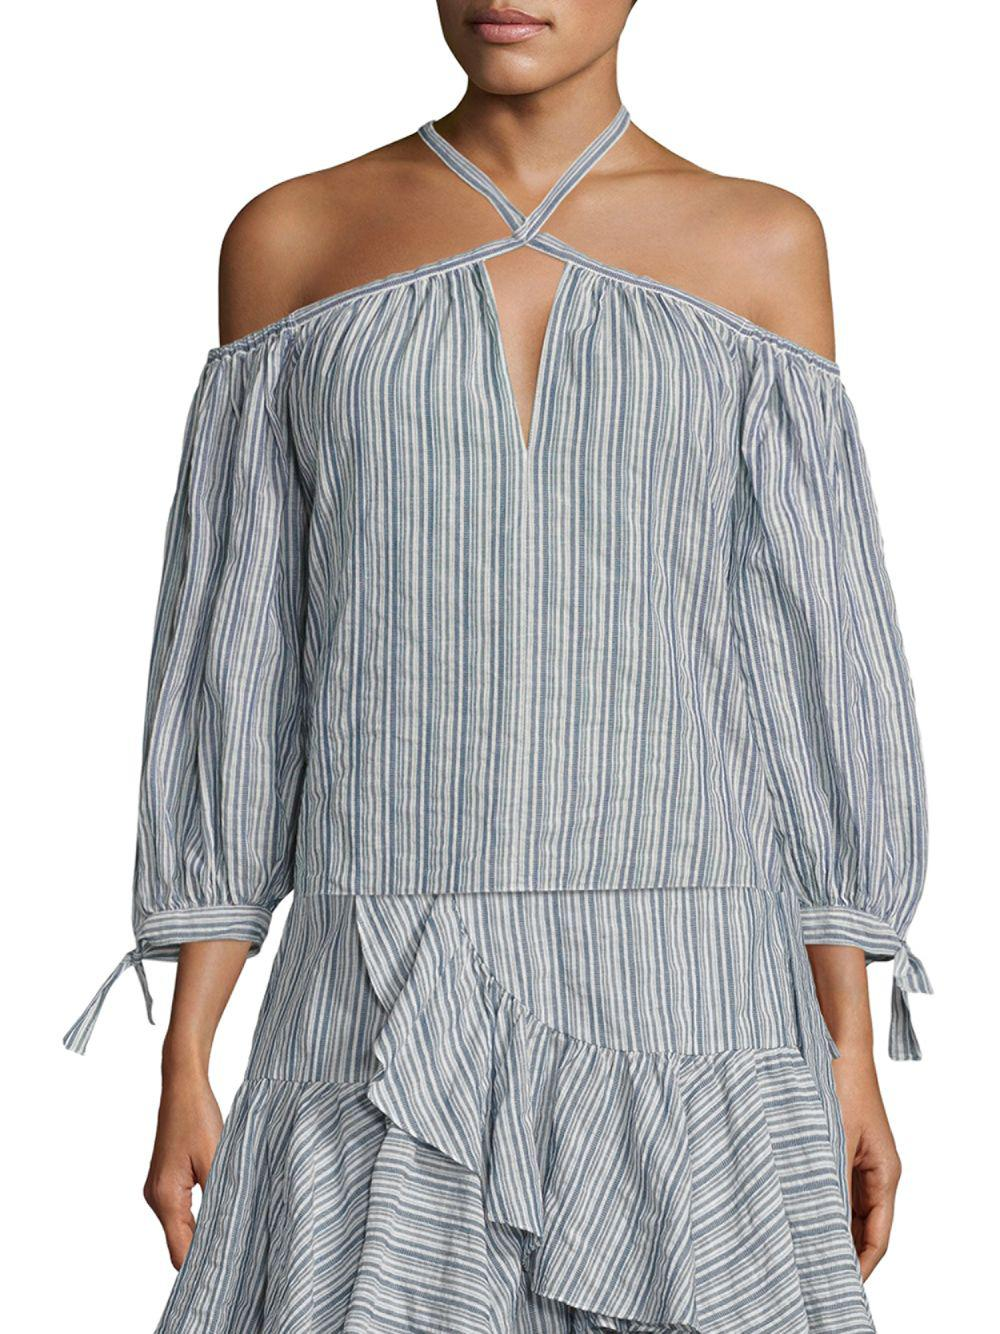 02902df3351e6c Lyst - Rebecca Taylor Striped Off-the-shoulder Top in Blue - Save 45%